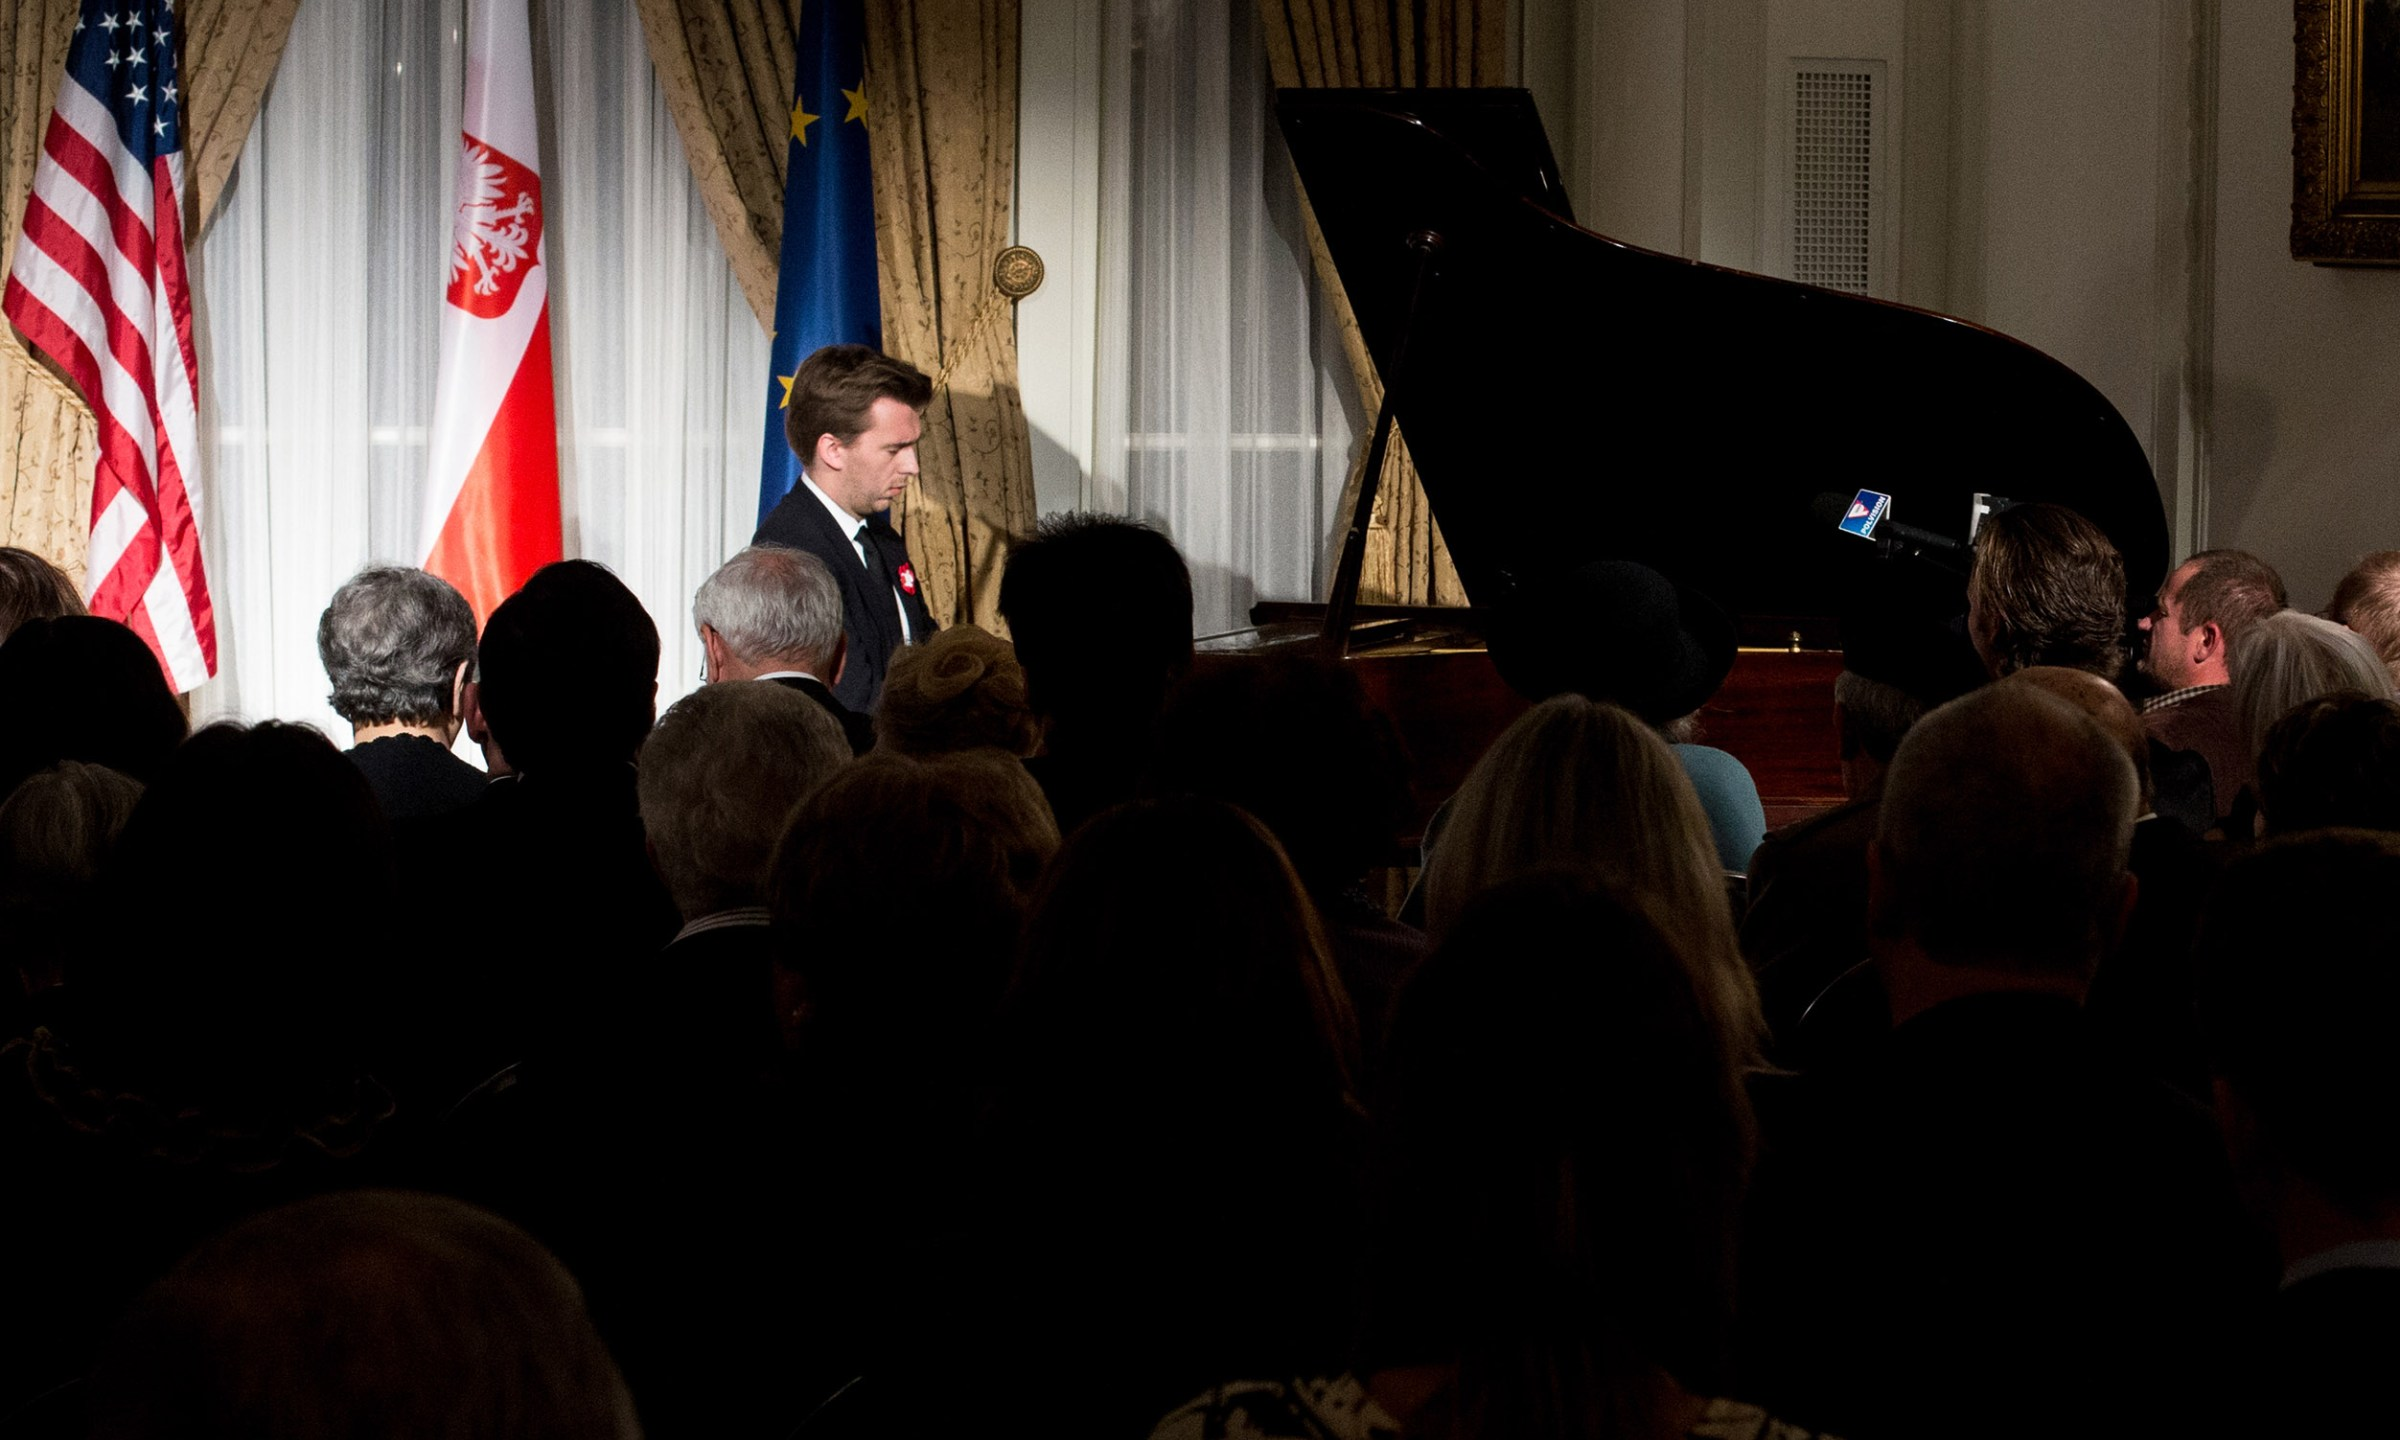 Recital at the Consulate General of the Republic of Poland in Chicago.